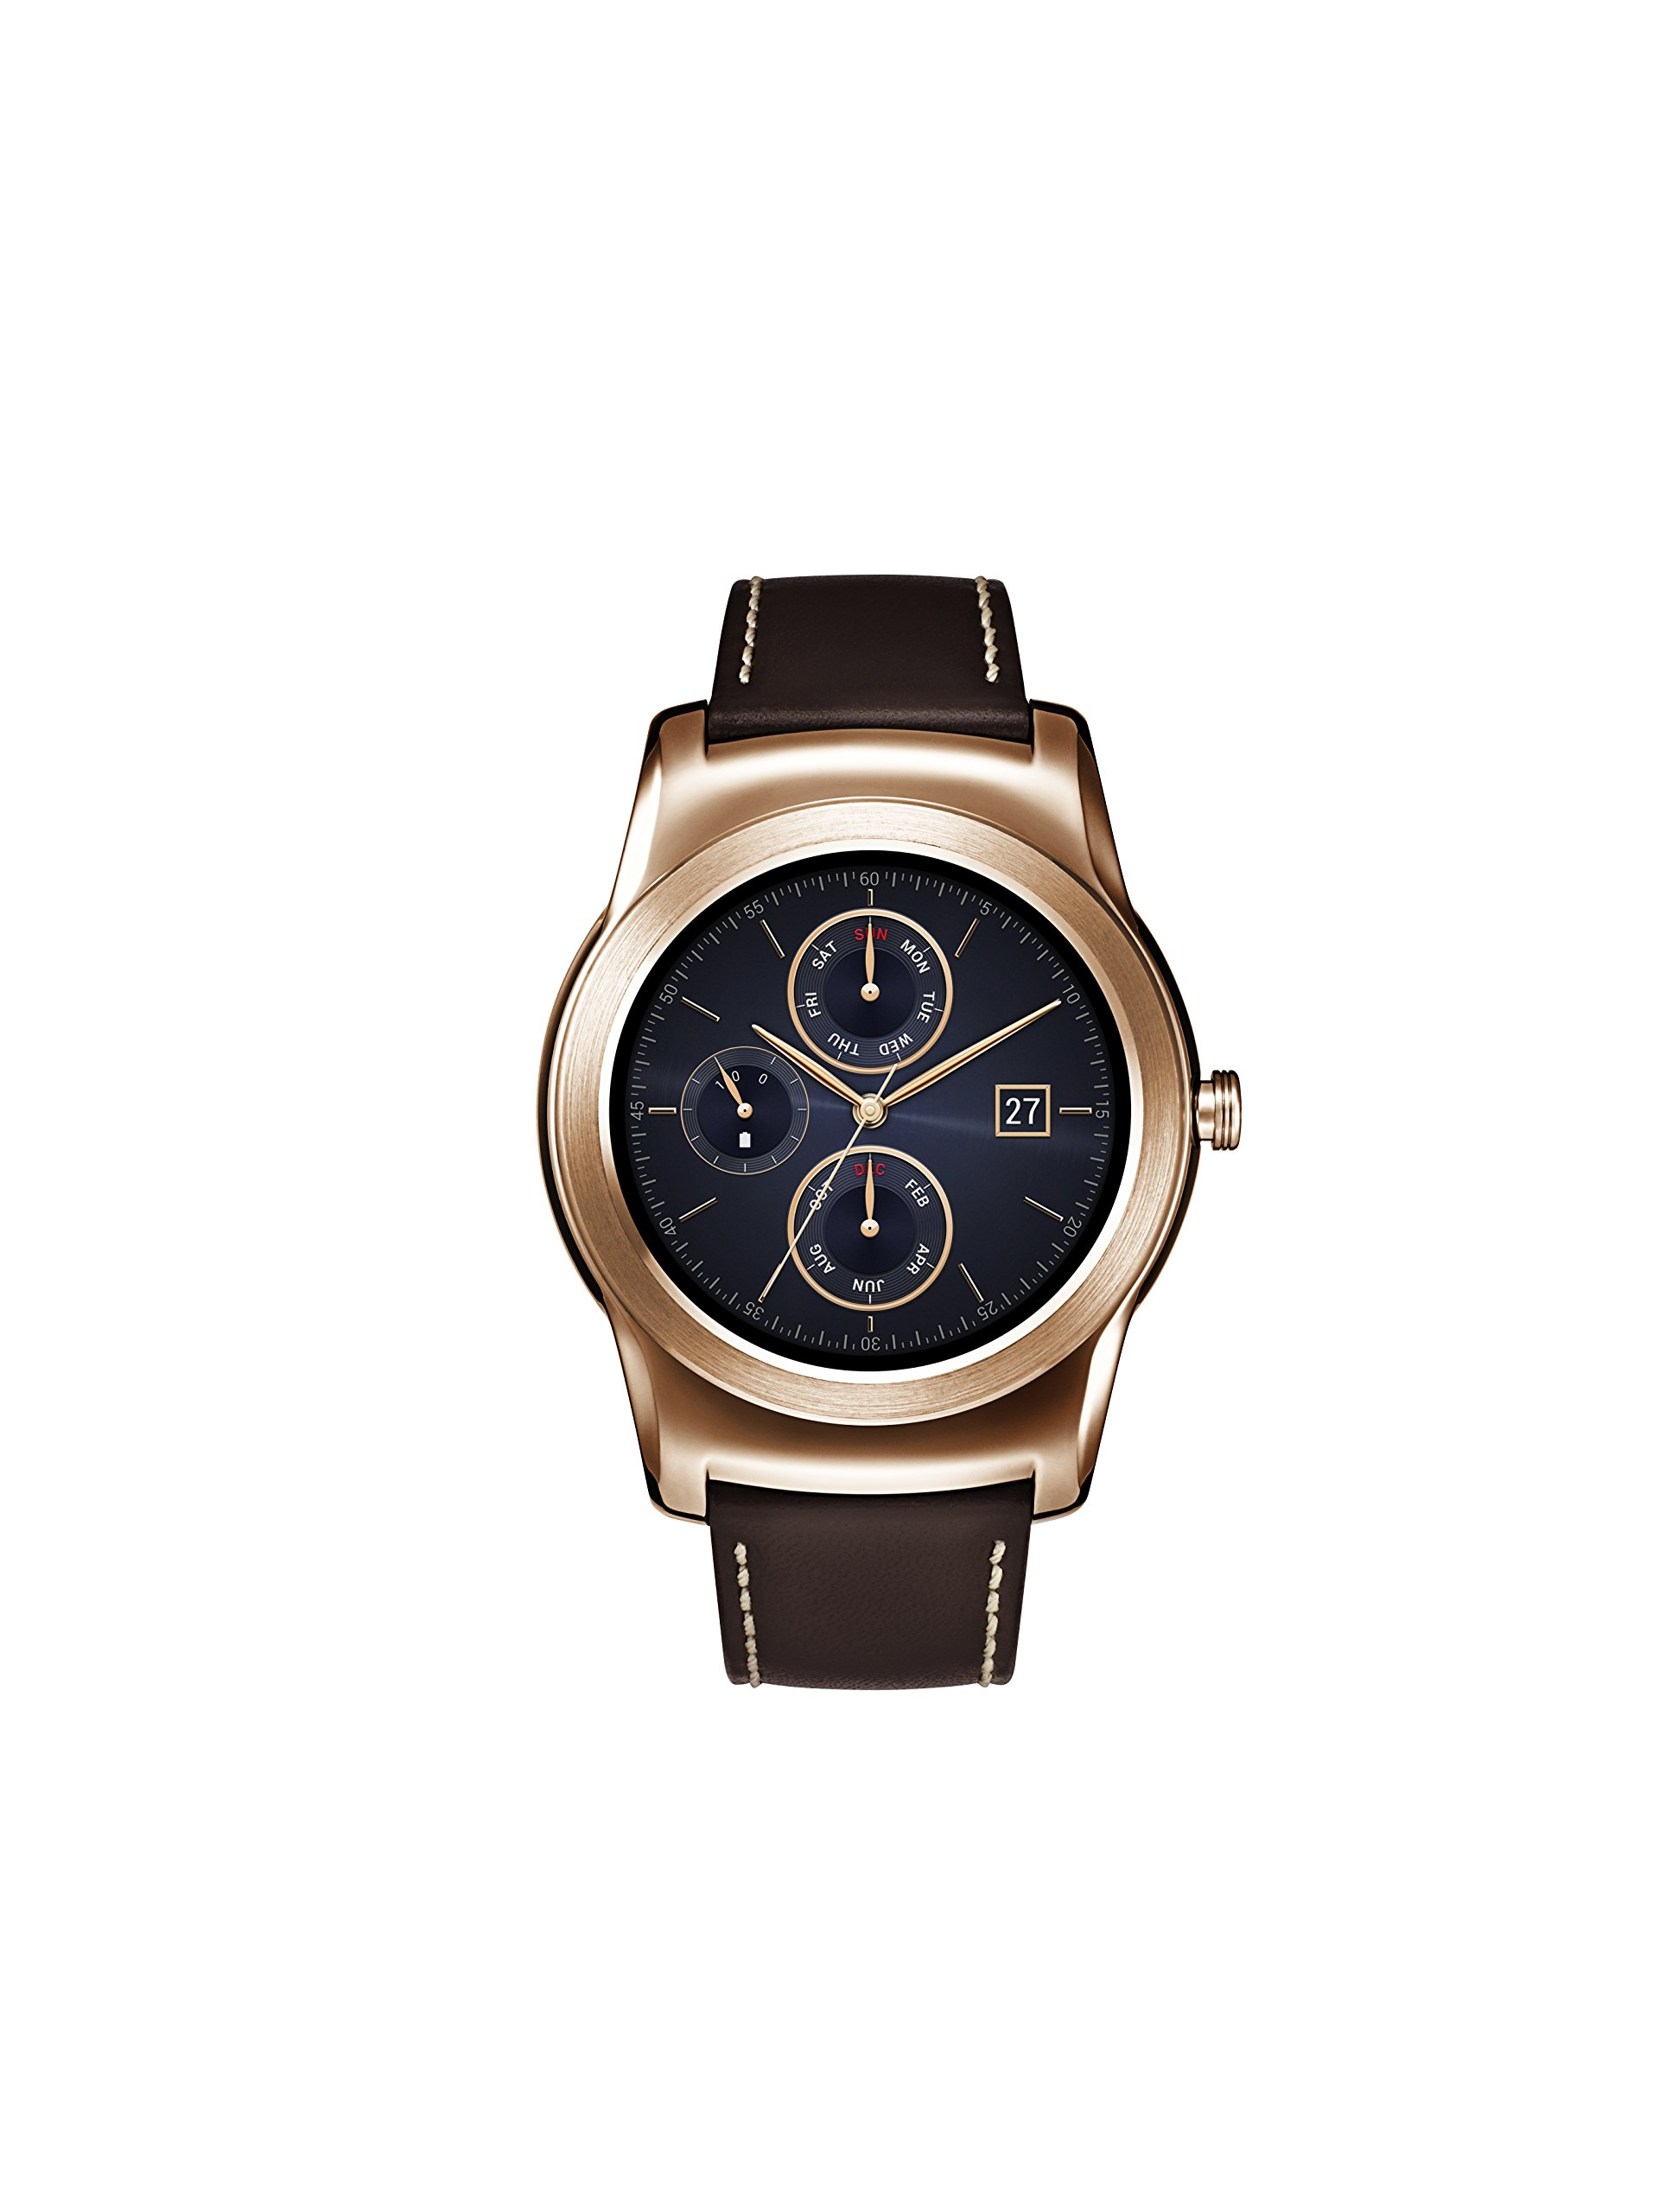 LG Watch Urbane Wearable Smart Watch - Pink Gold